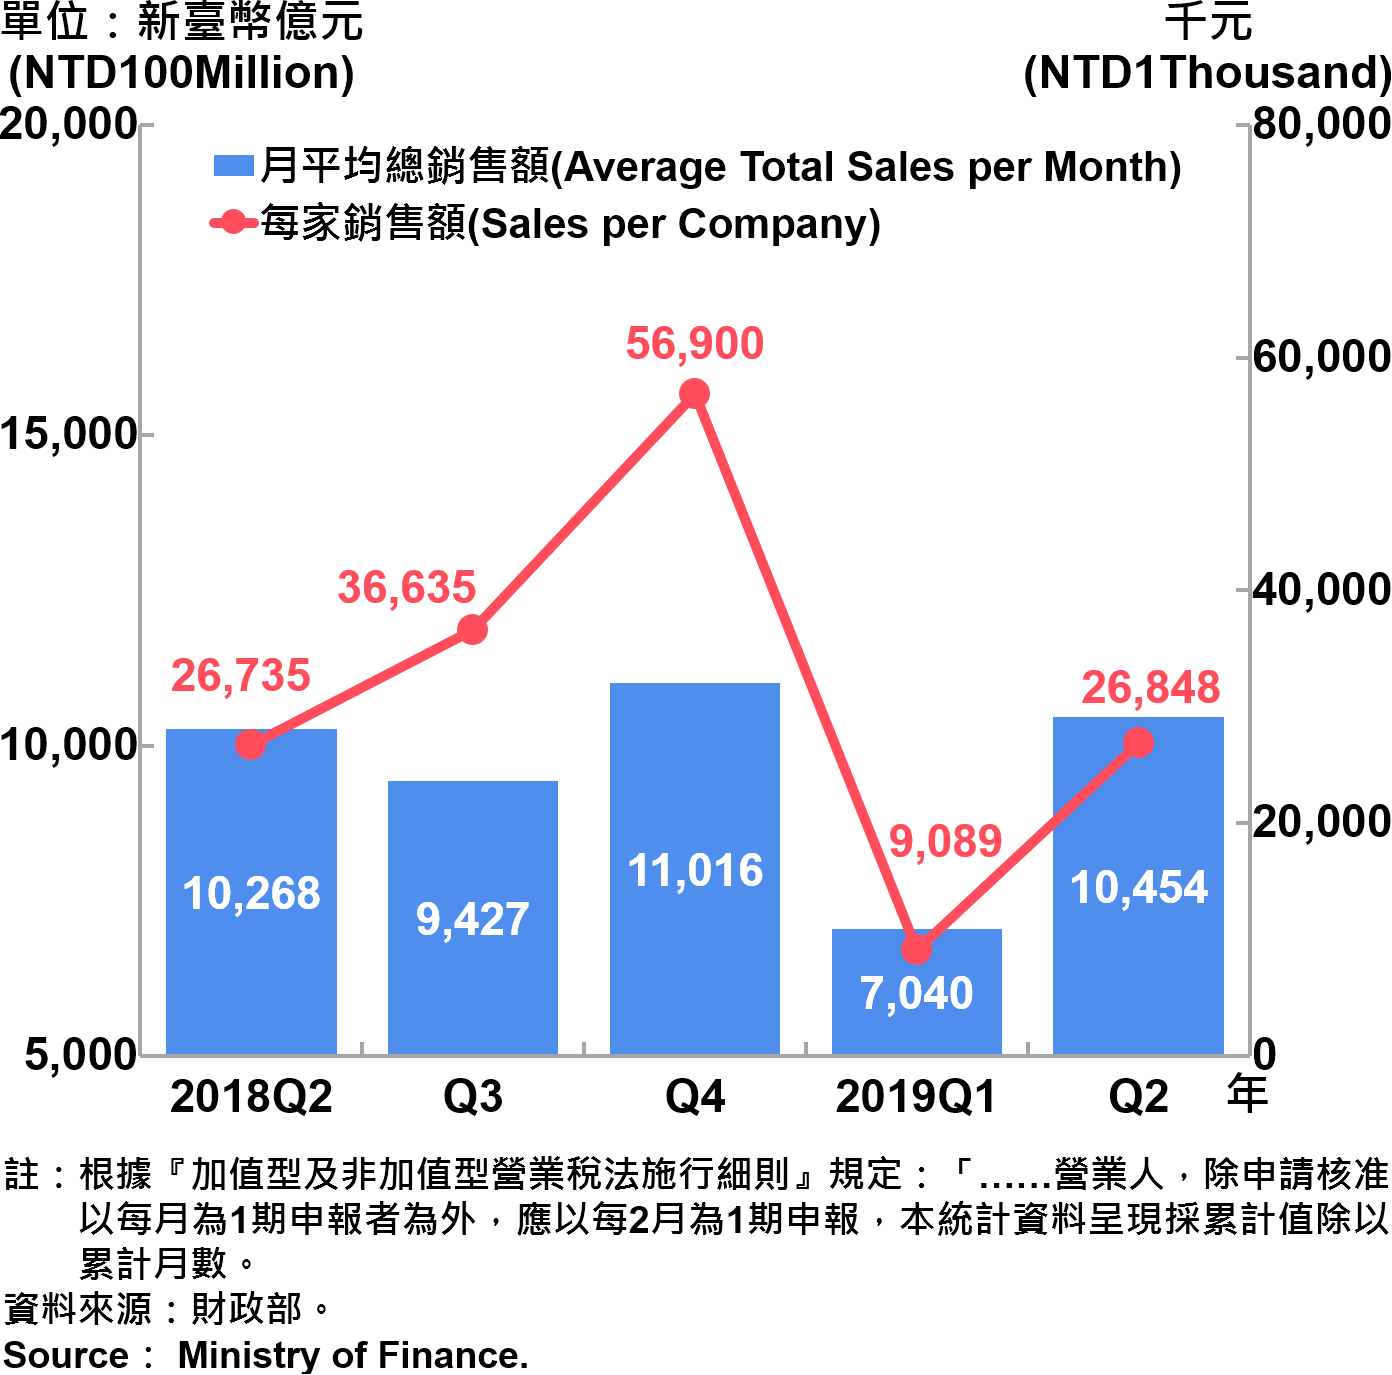 臺北市公司行號銷售額—2019Q2 Sales of Companies and Firms in Taipei City—2019Q2